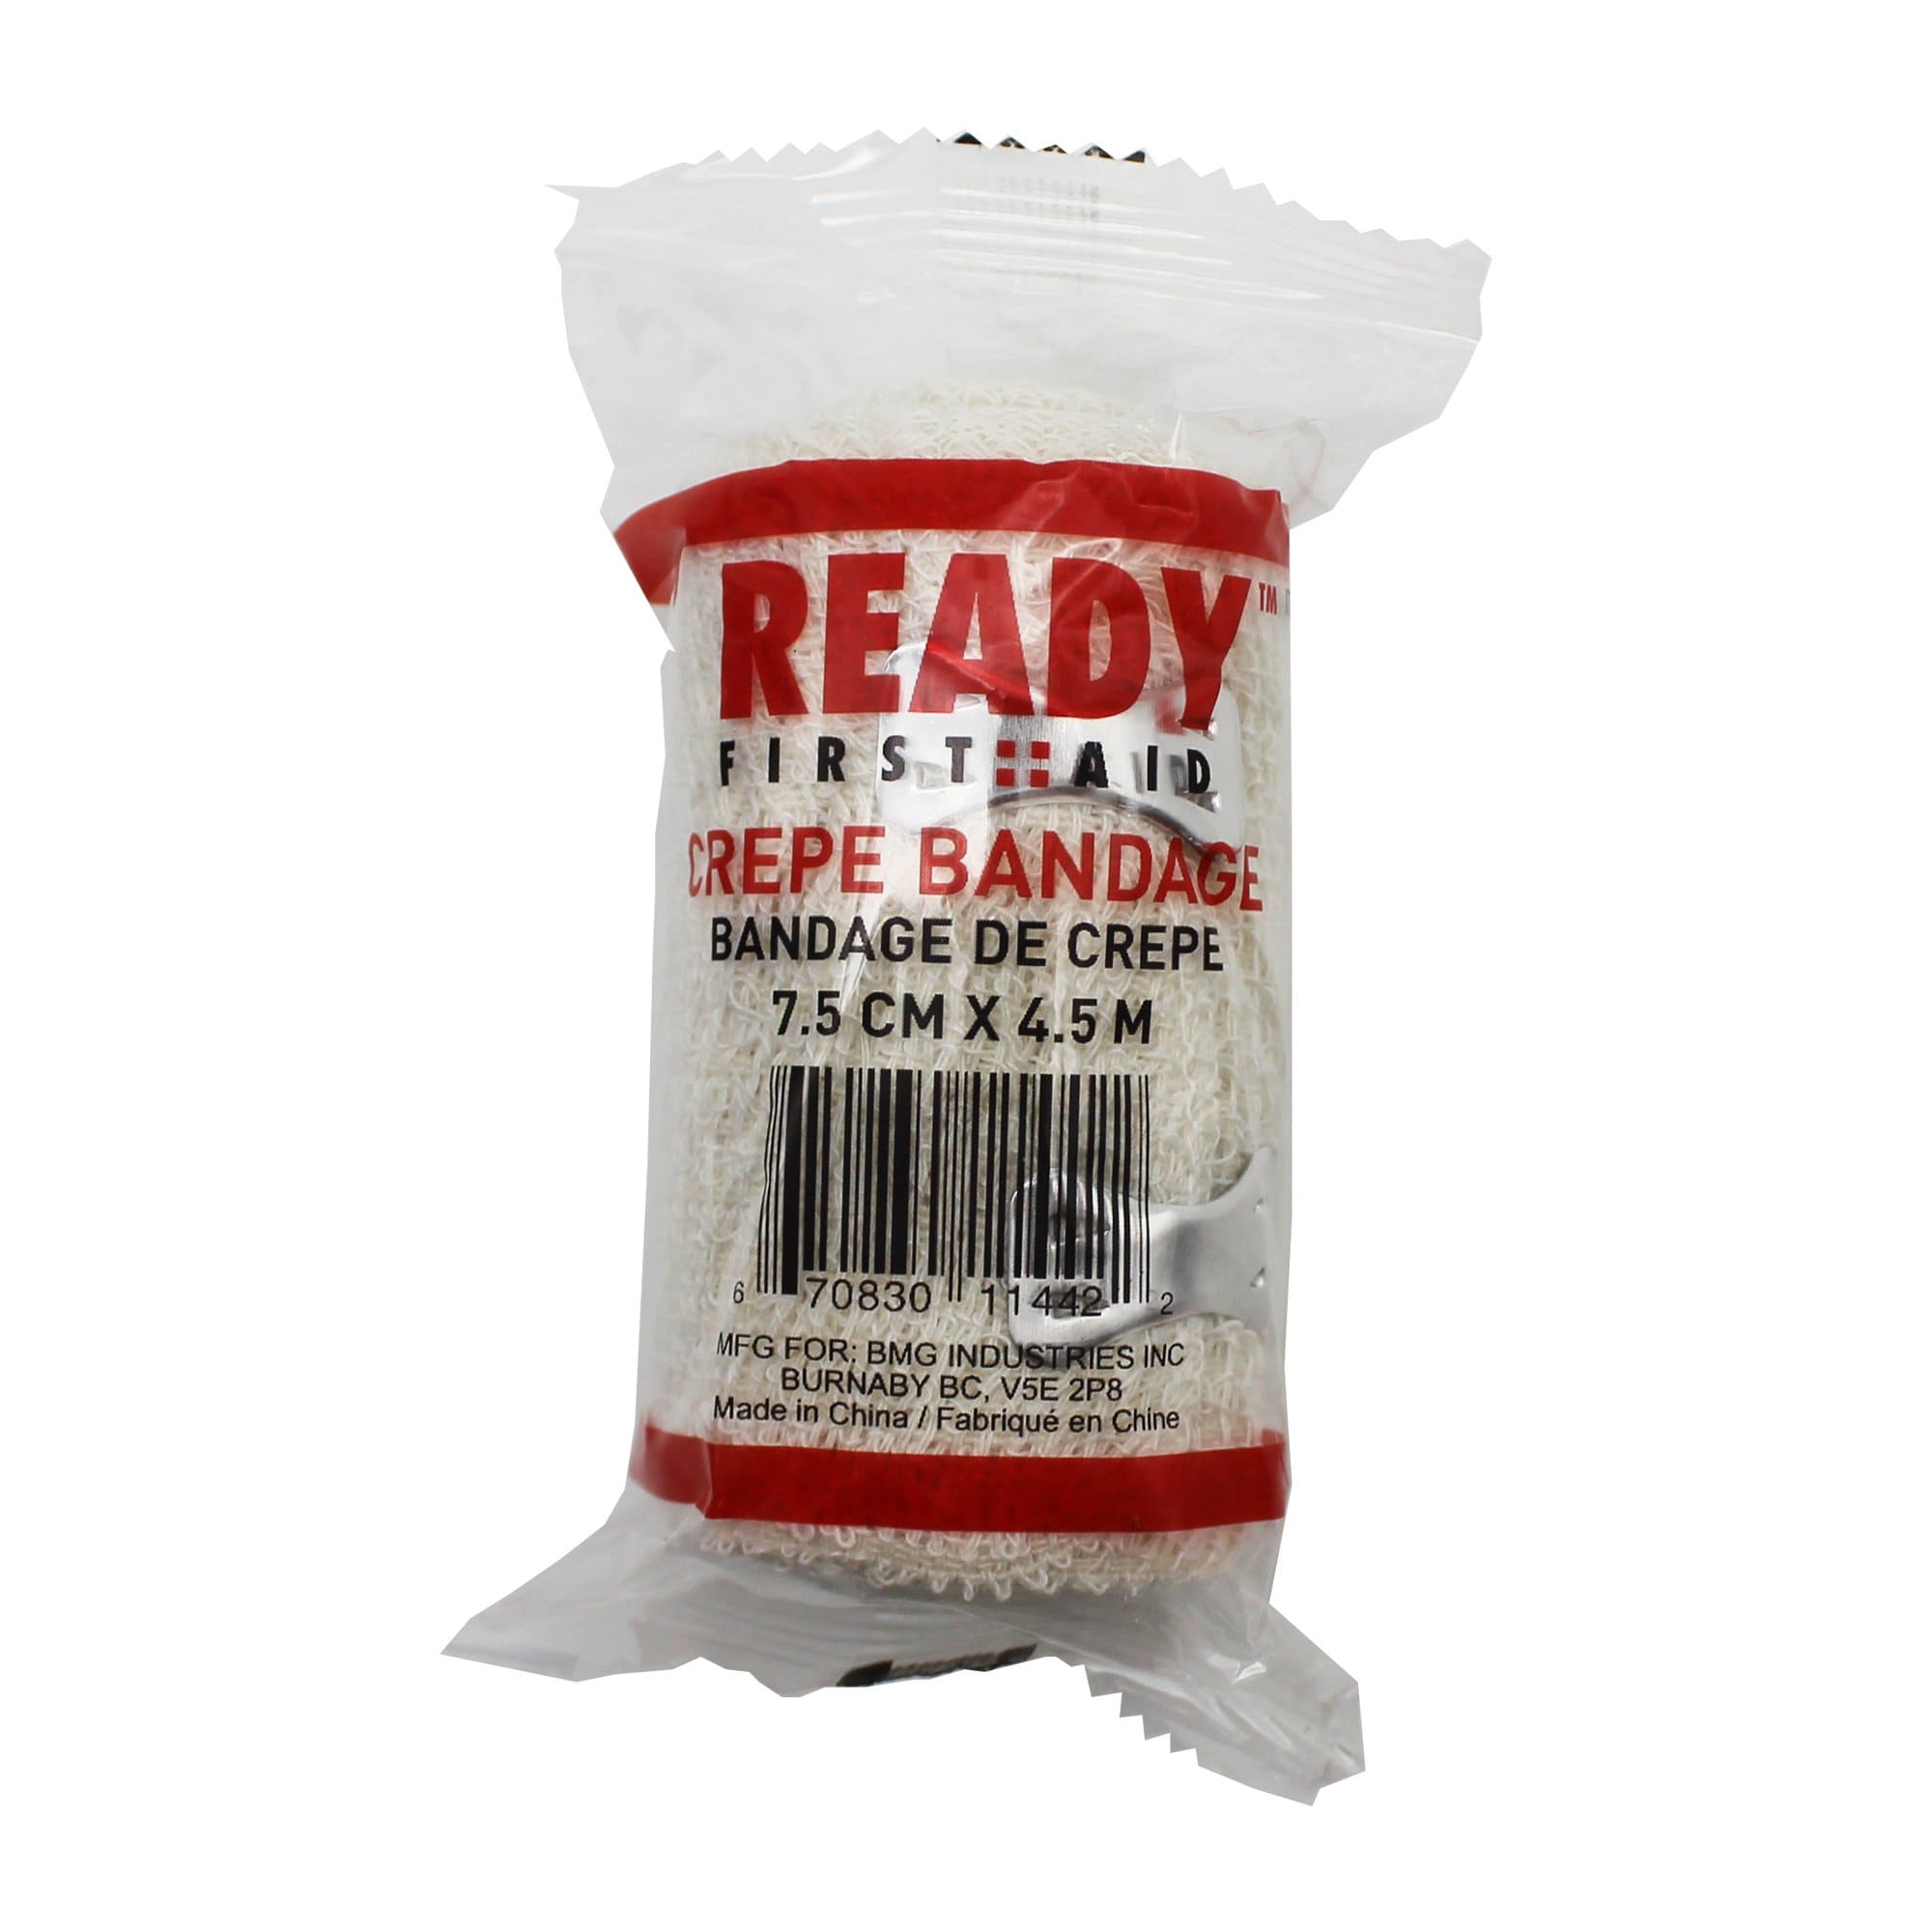 Crepe Bandage, 7.5cm x 4.5cm - Ready First Aid